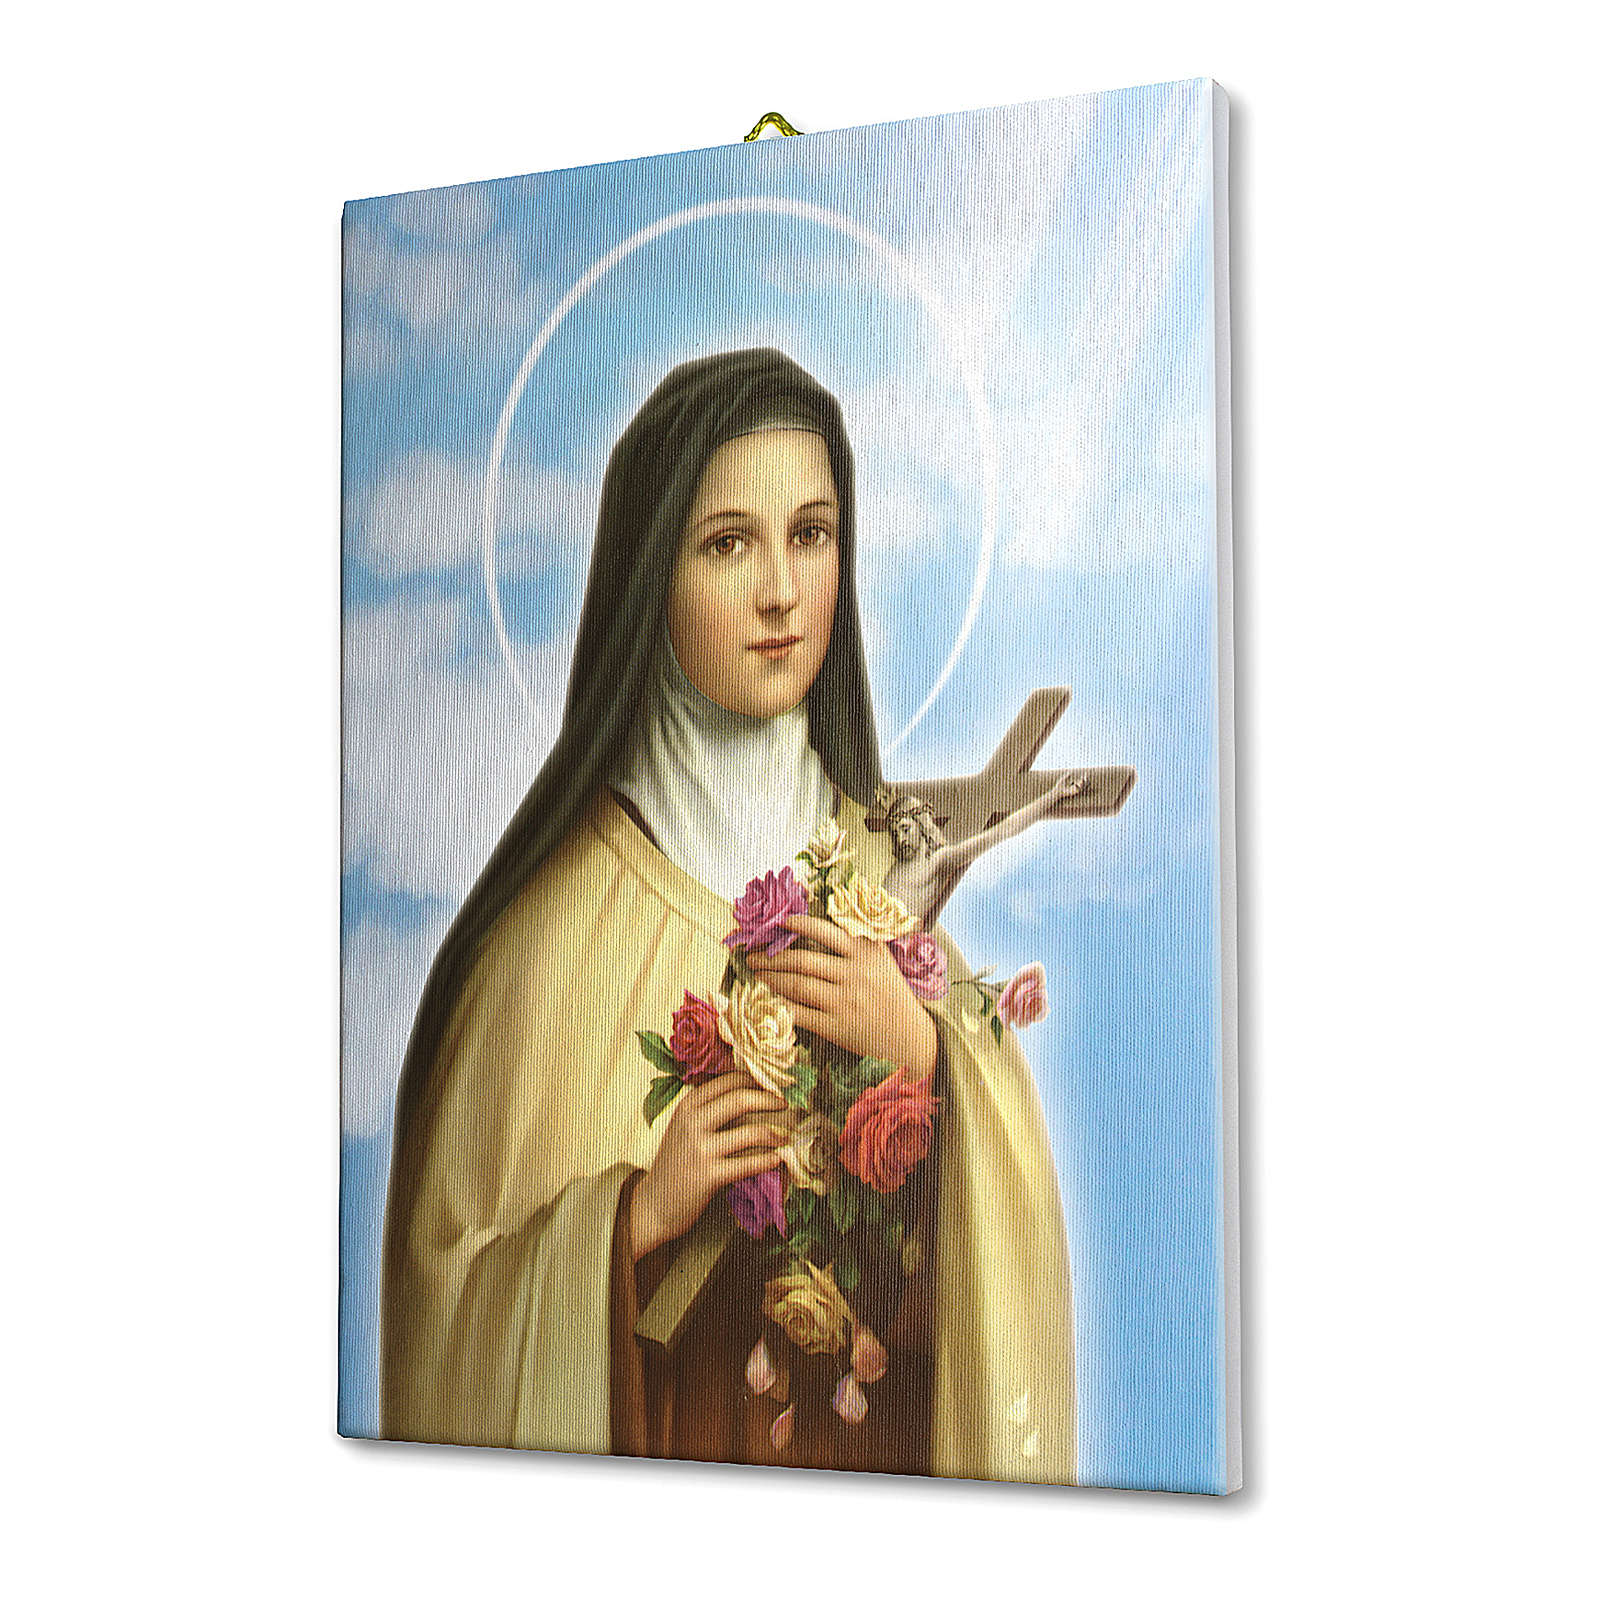 Saint Therese of Lisieux print on canvas 40x30 cm 3